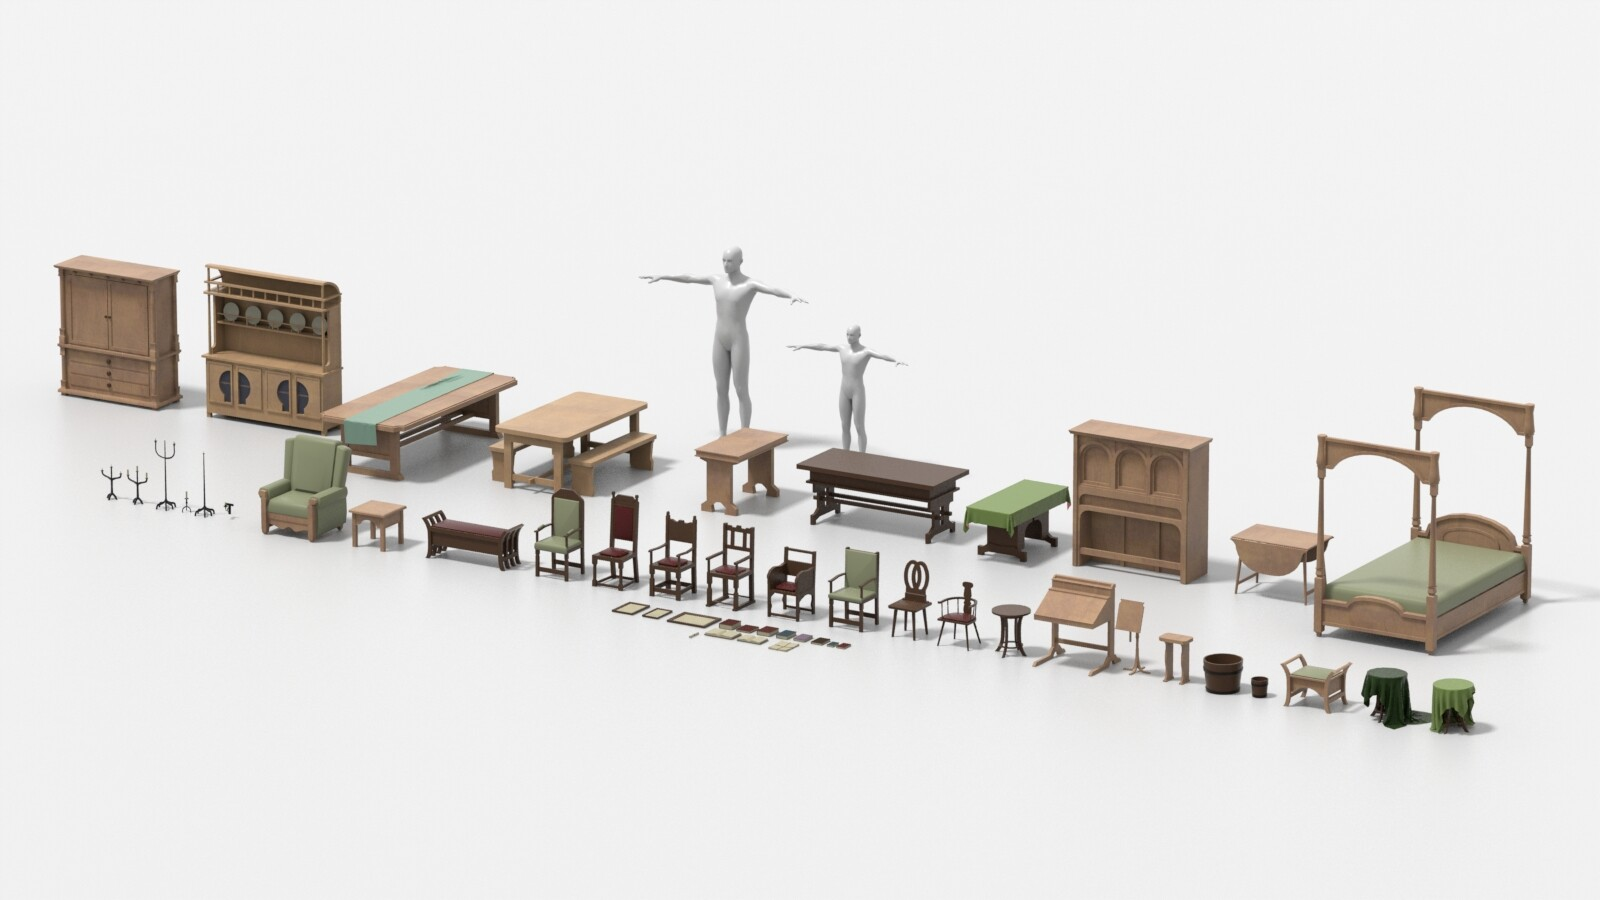 A collection of the props and furniture I built in Modo based on set images from the films.